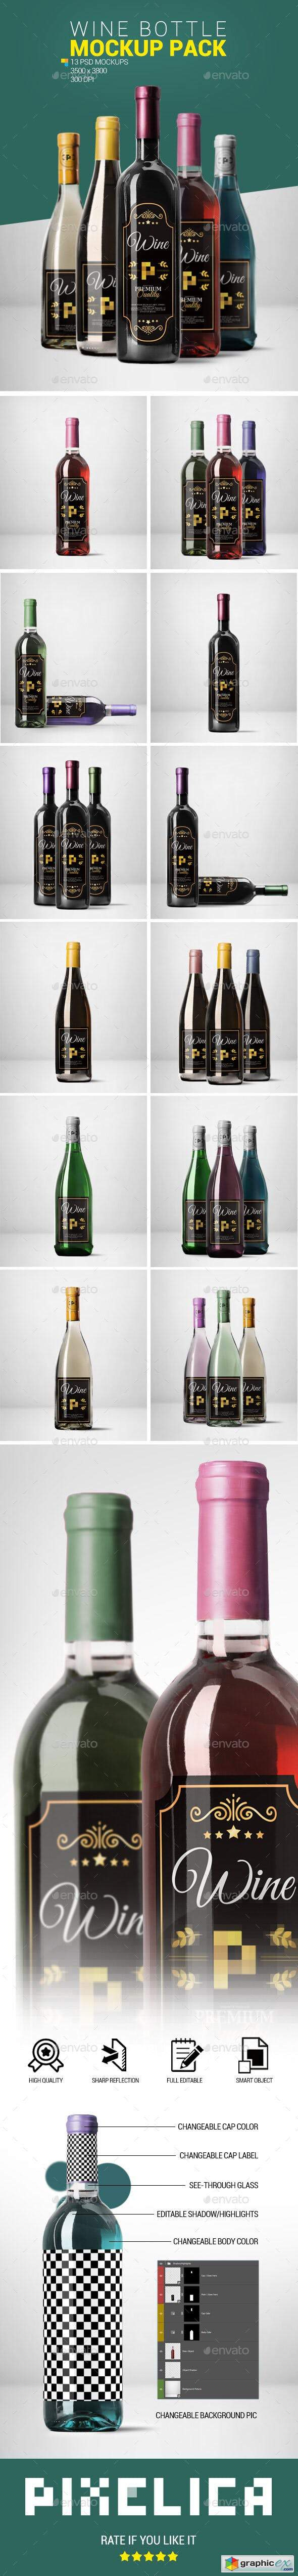 Wine Bottle Mockup Pack 2